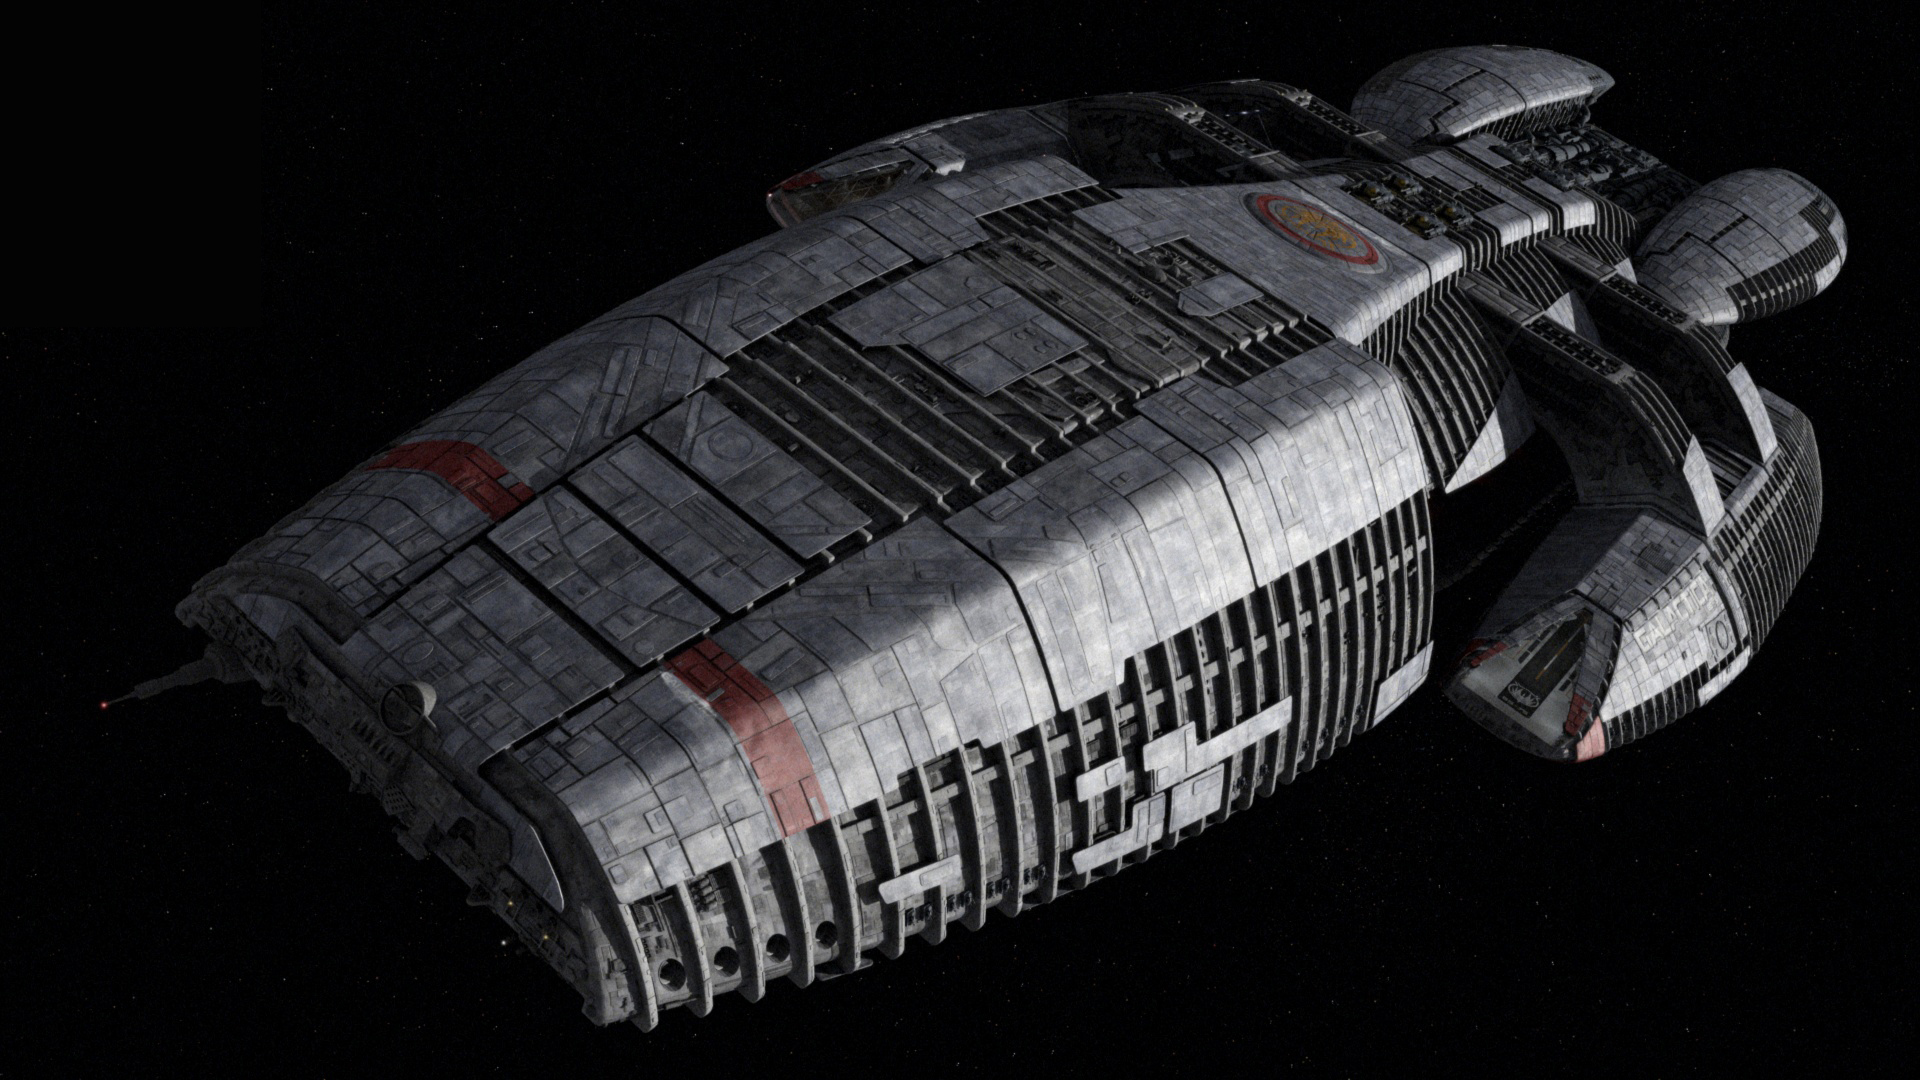 battlestar galactica space vehicle HD Wallpaper